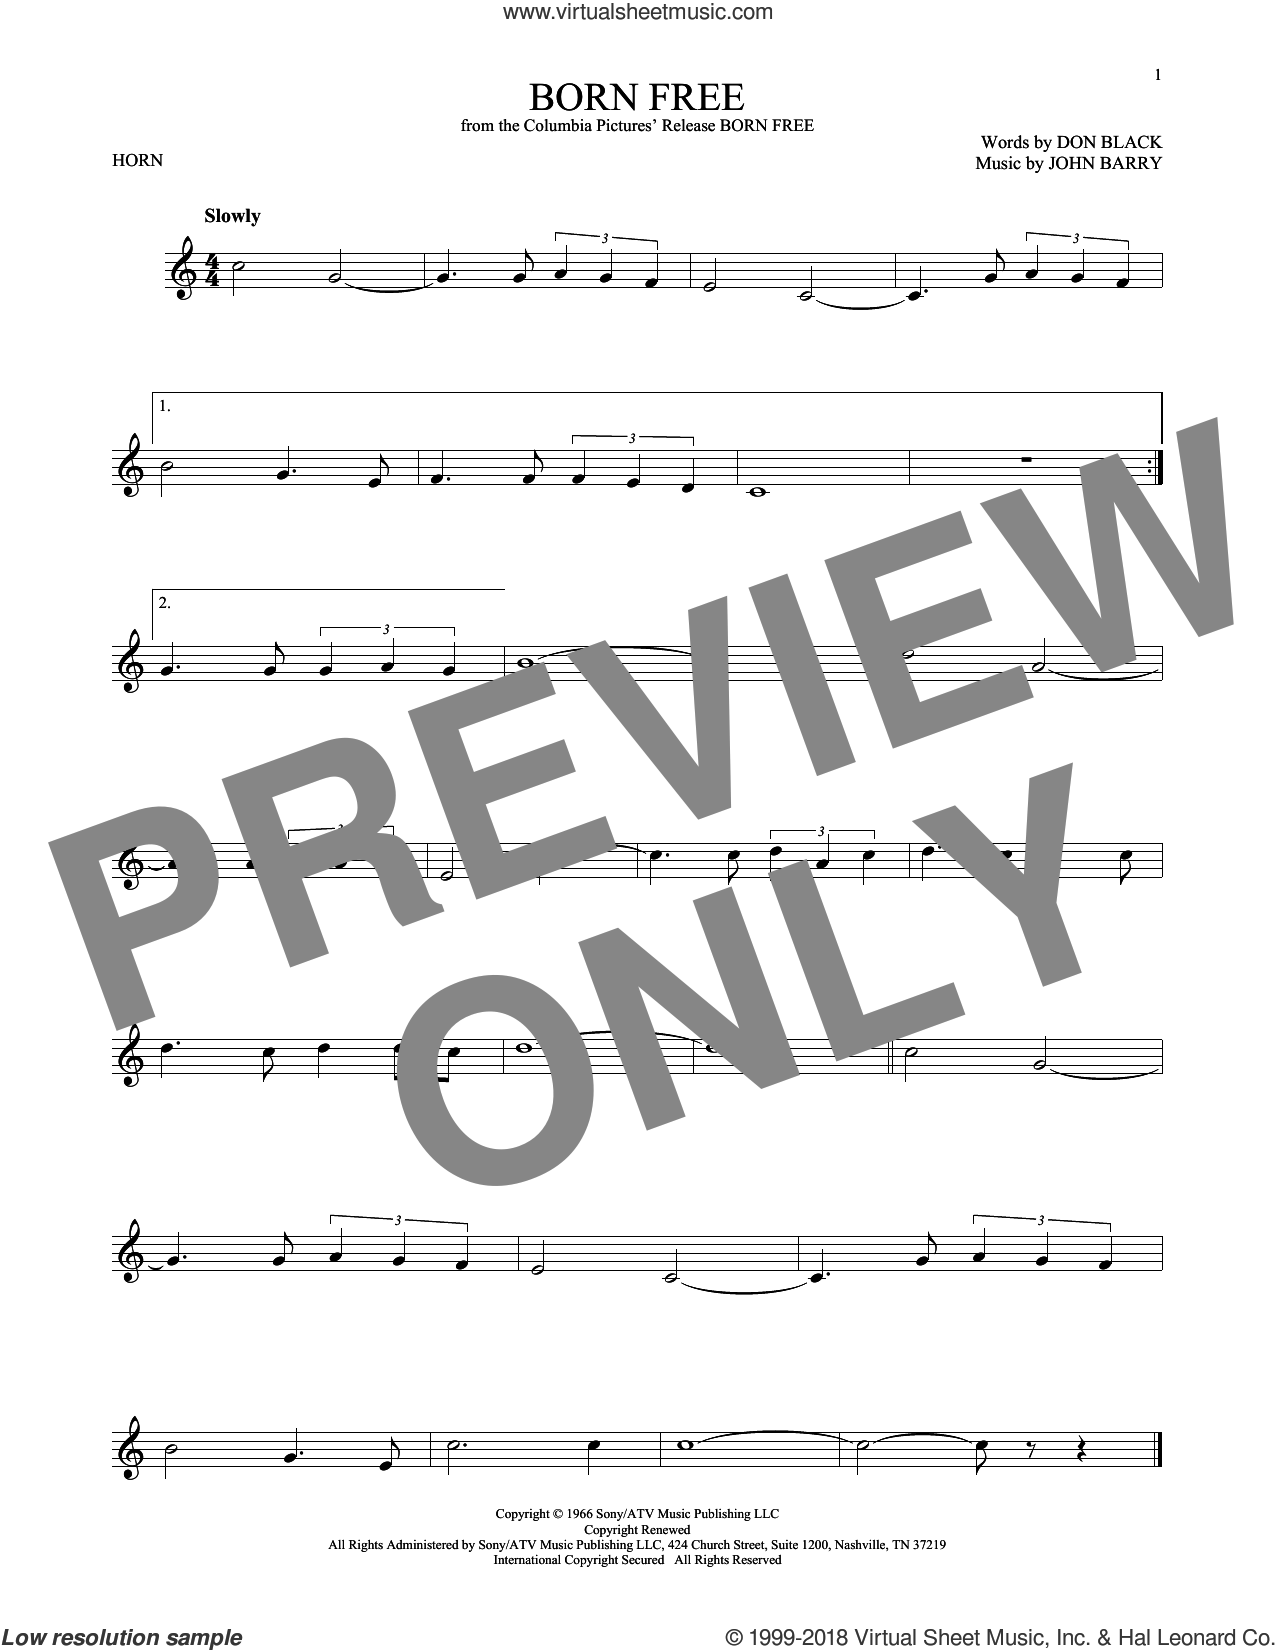 Born Free sheet music for horn solo by Don Black, Roger Williams and John Barry, intermediate skill level